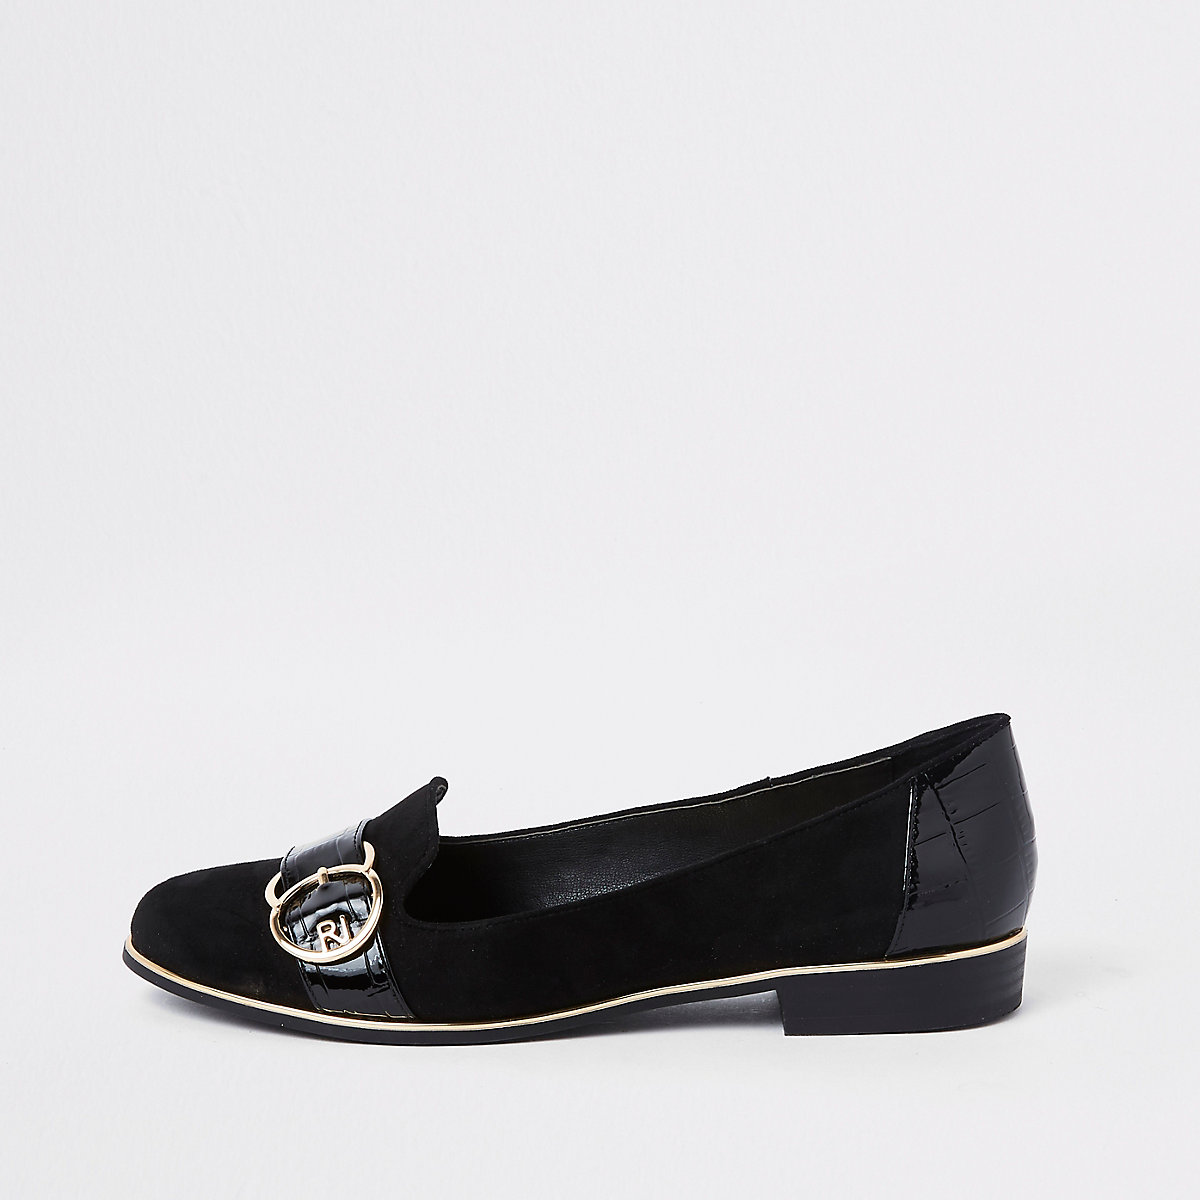 Black gold tone buckle ballet shoe